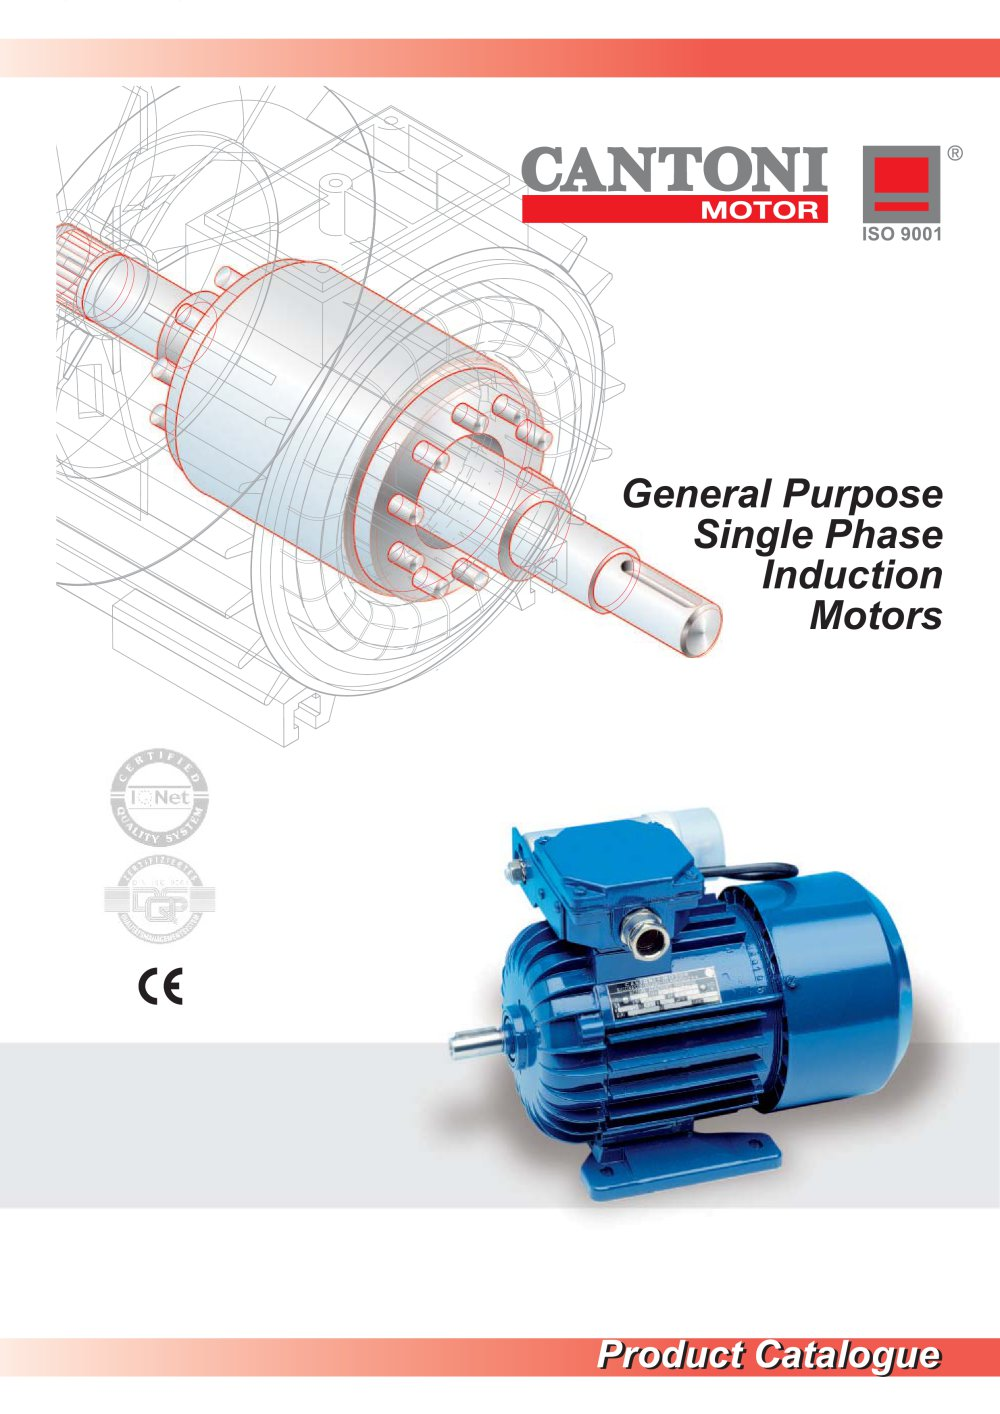 General Purpose Single Phase Induction Motors - 1 / 12 Pages